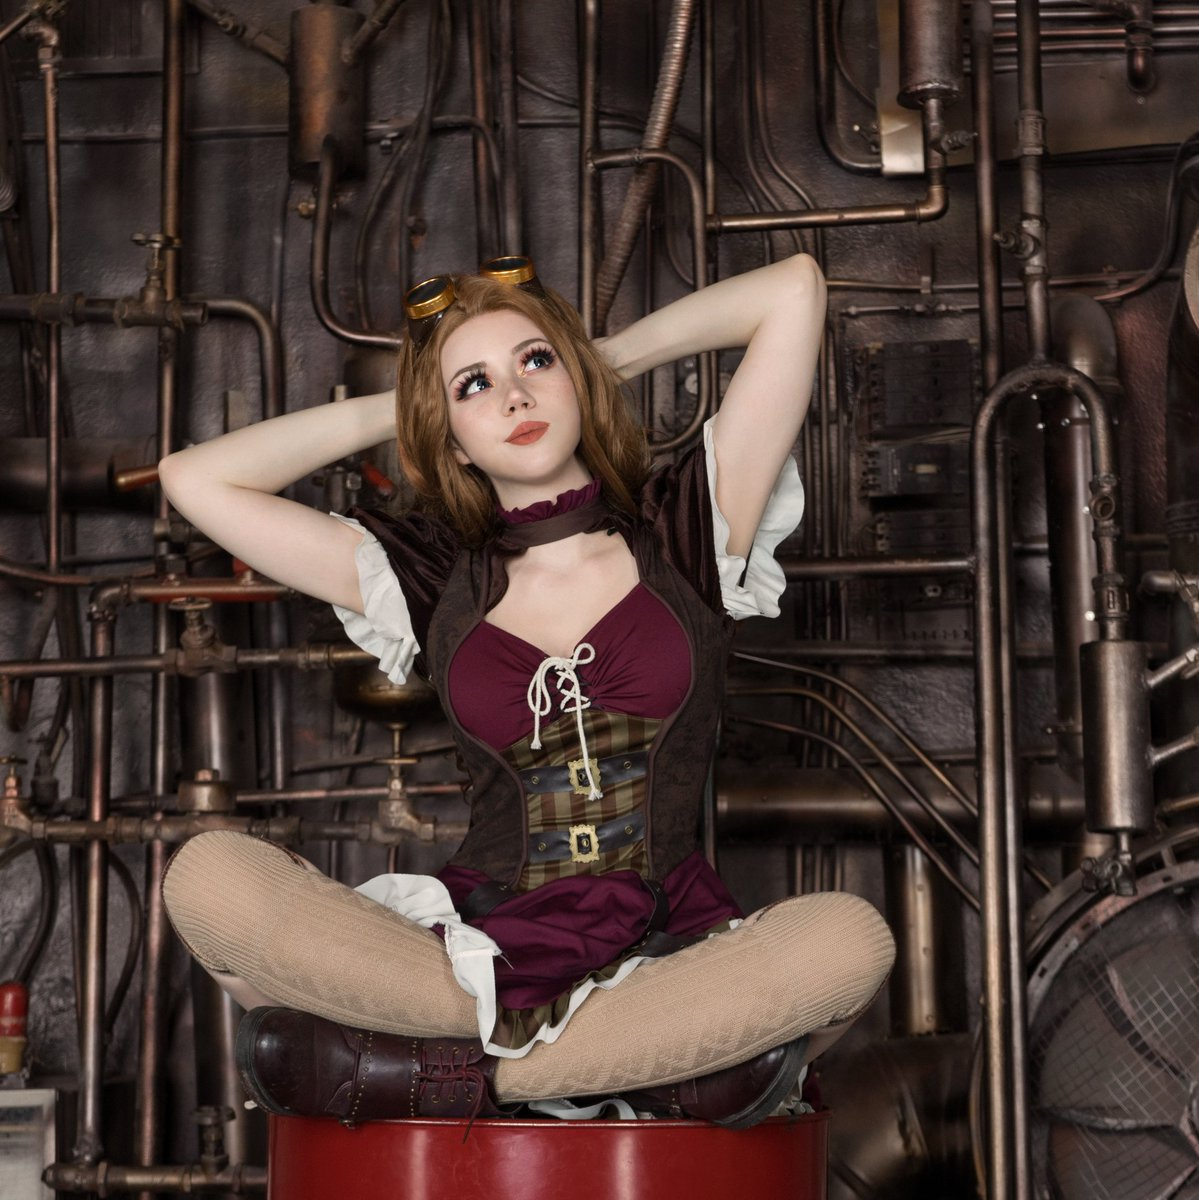 Ok, I'm back! I'll try to post here regularly~ Do you like steampunk? I do and wanna make more looks soon #steampunk